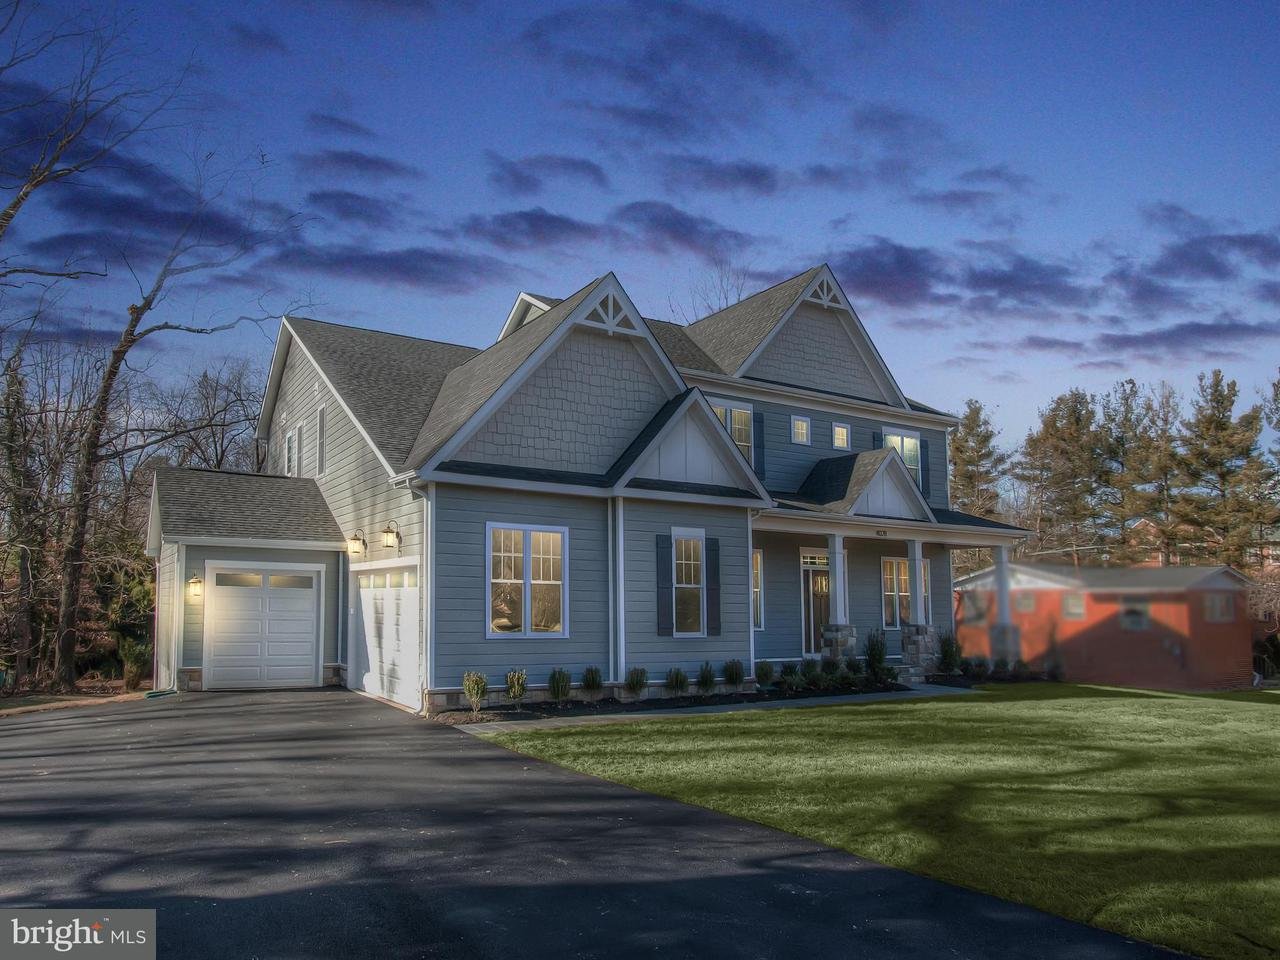 Single Family Home for Sale at 4028 Whitacre Road 4028 Whitacre Road Fairfax, Virginia 22032 United States